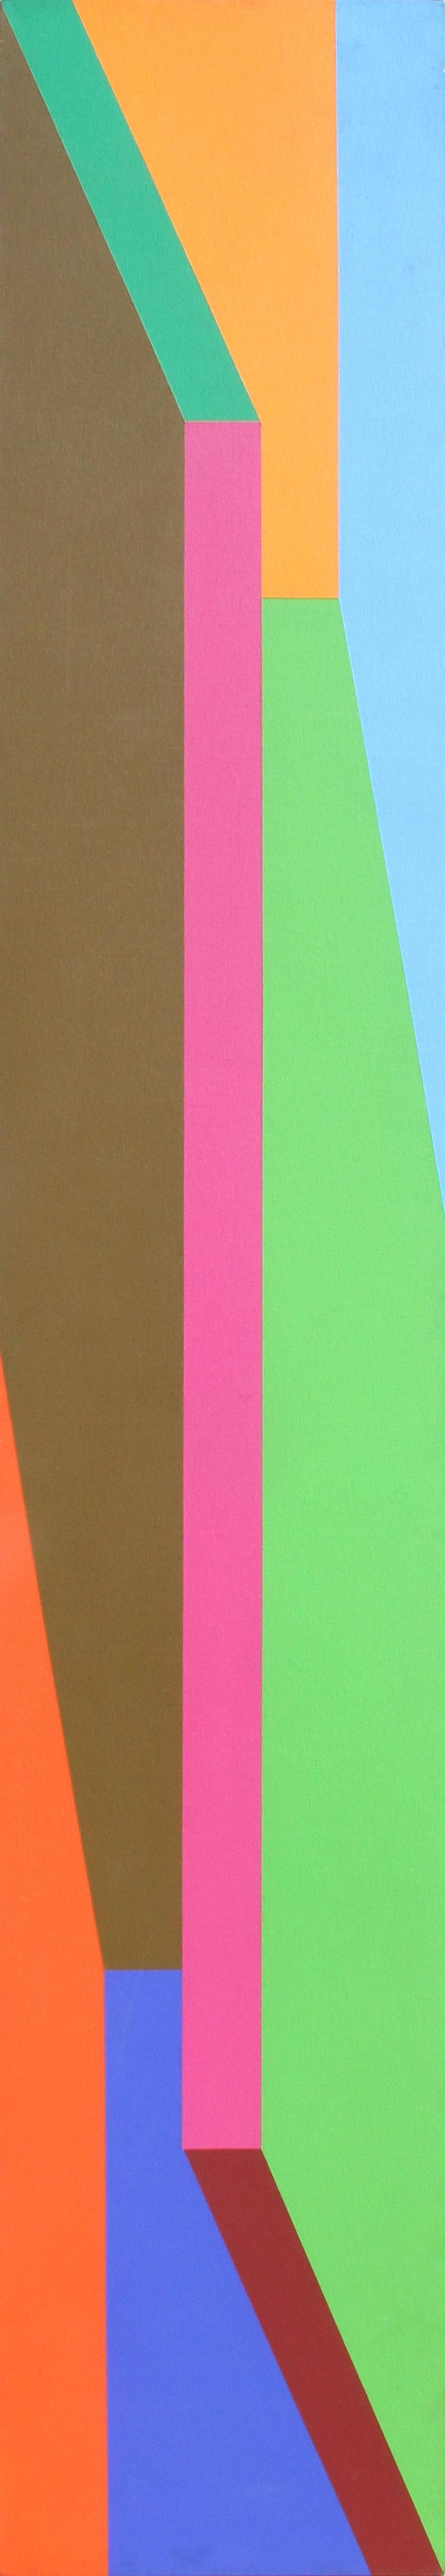 Hot Line, Large OP Art Painting by Arthur Boden 1971 For Sale 1